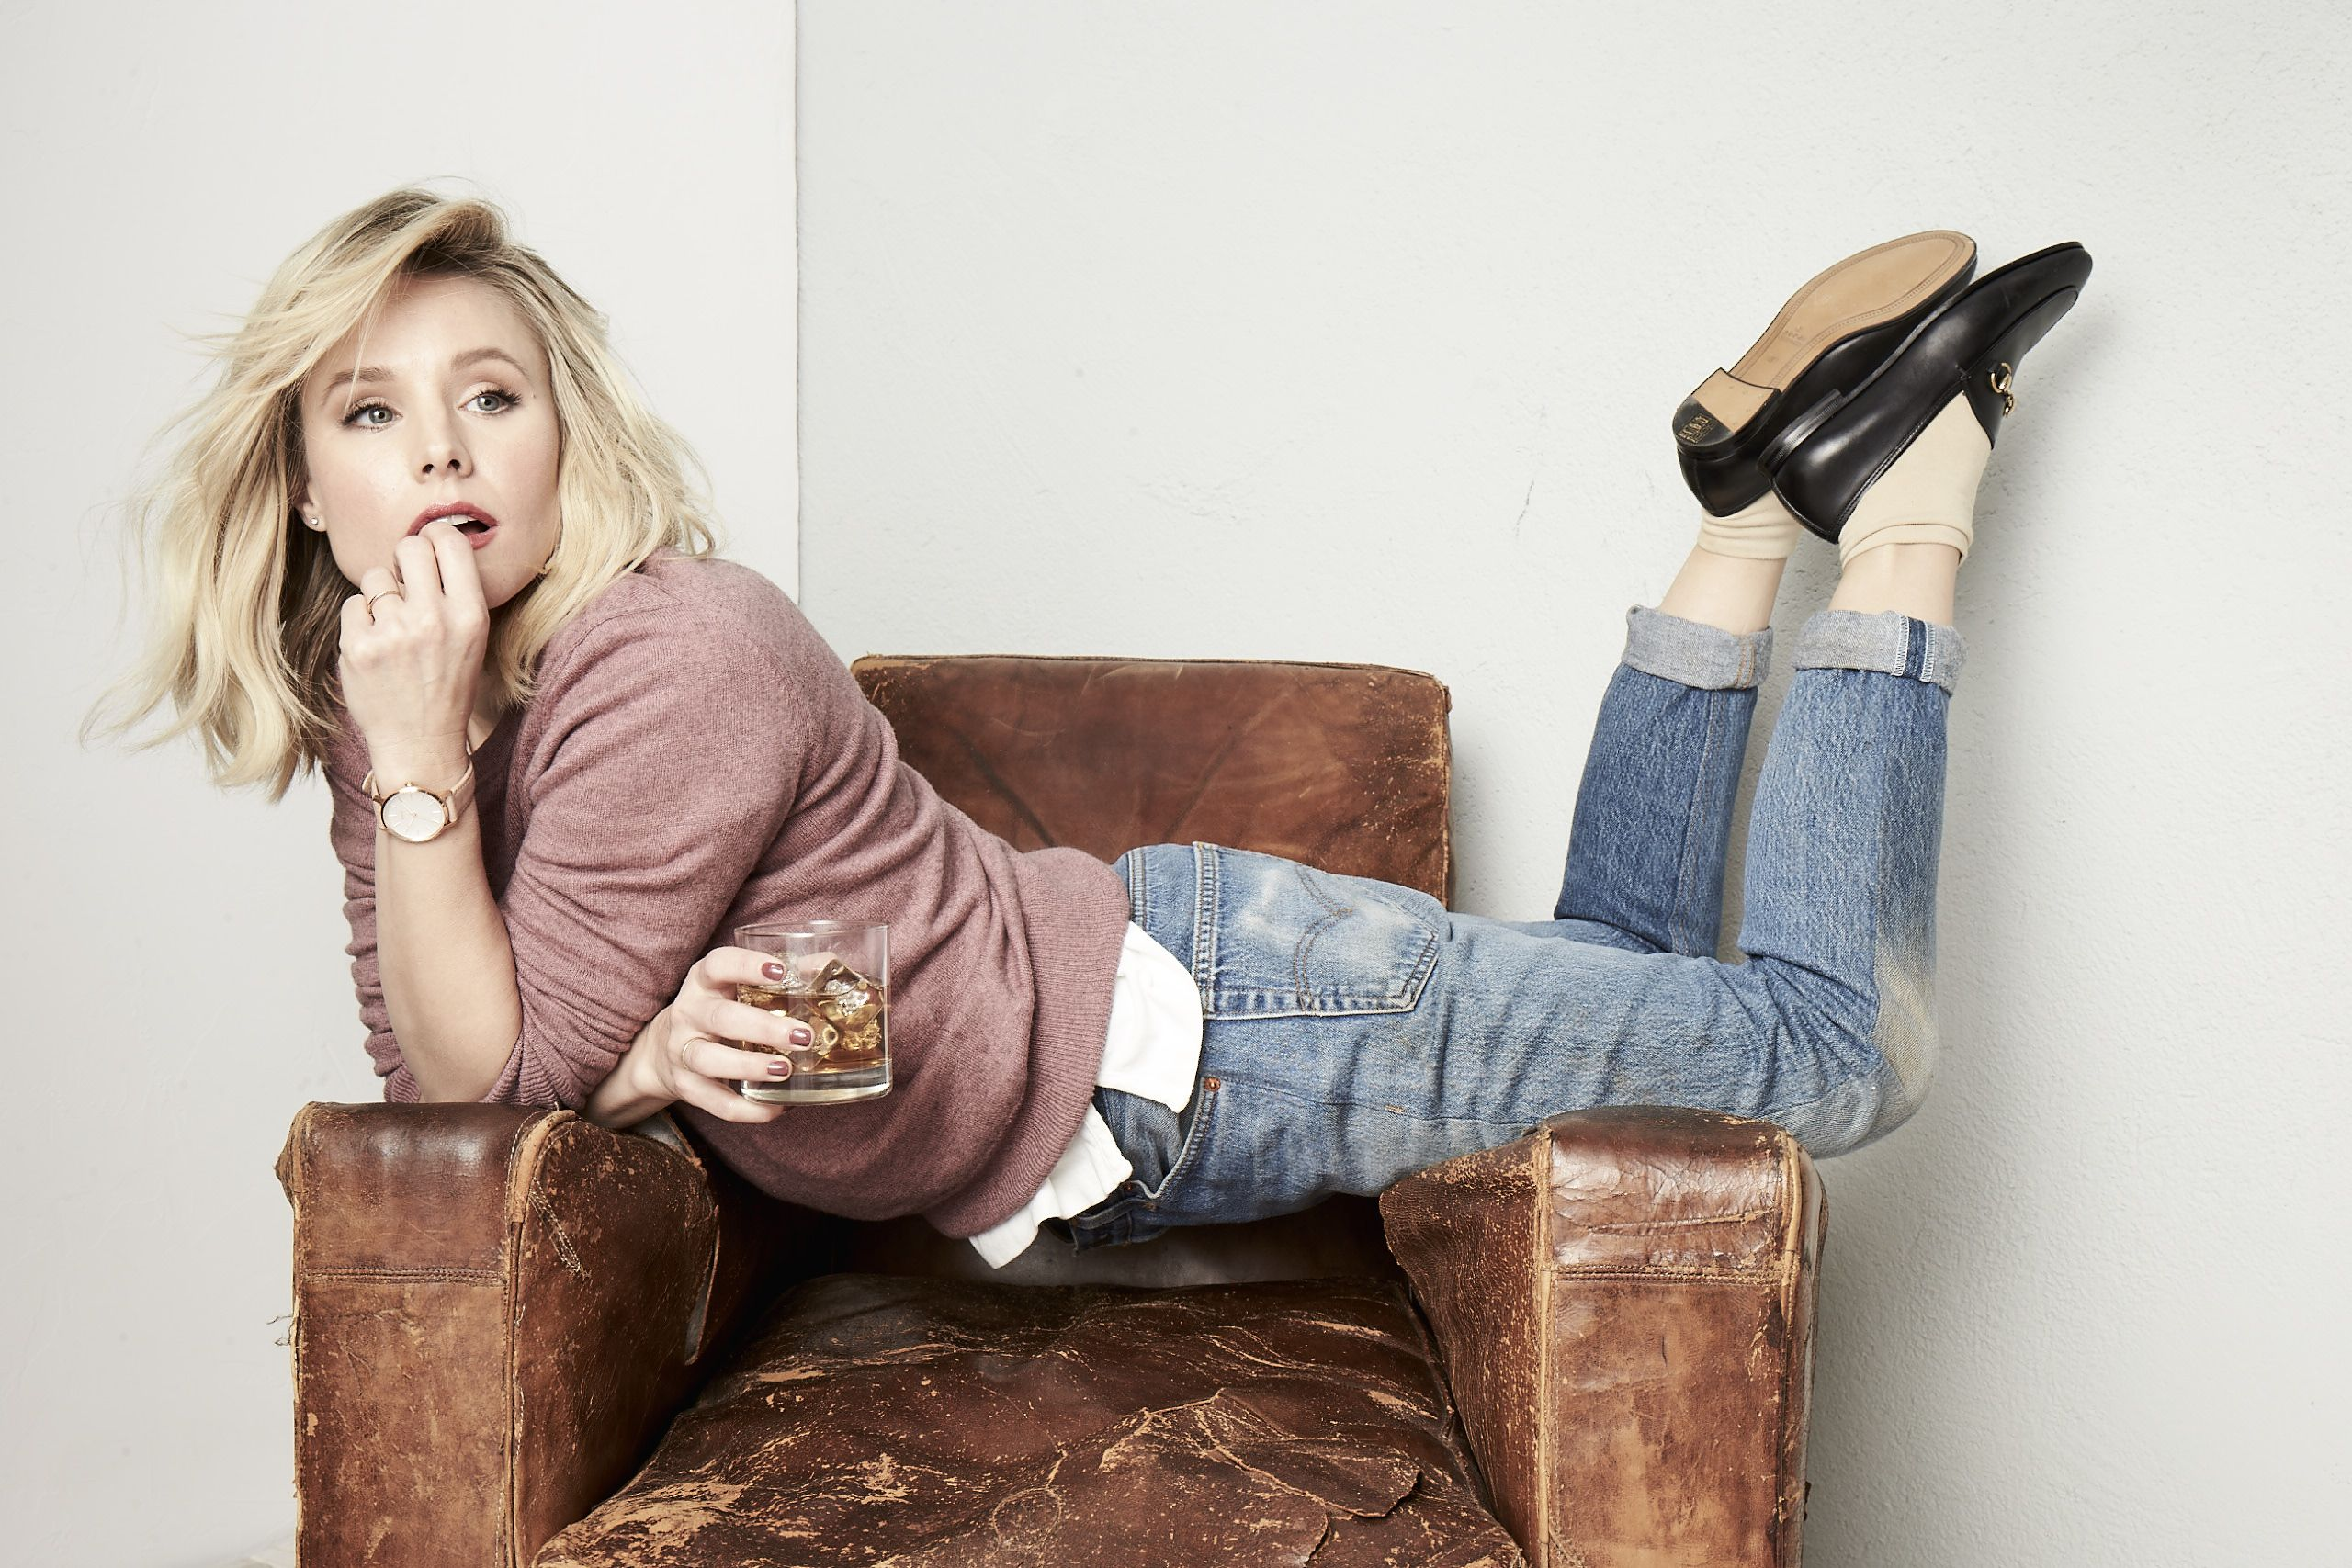 bfe577ebf1e7b4 Kristen Bell on Why You Should Schedule Time to Waste Through Out Your Day